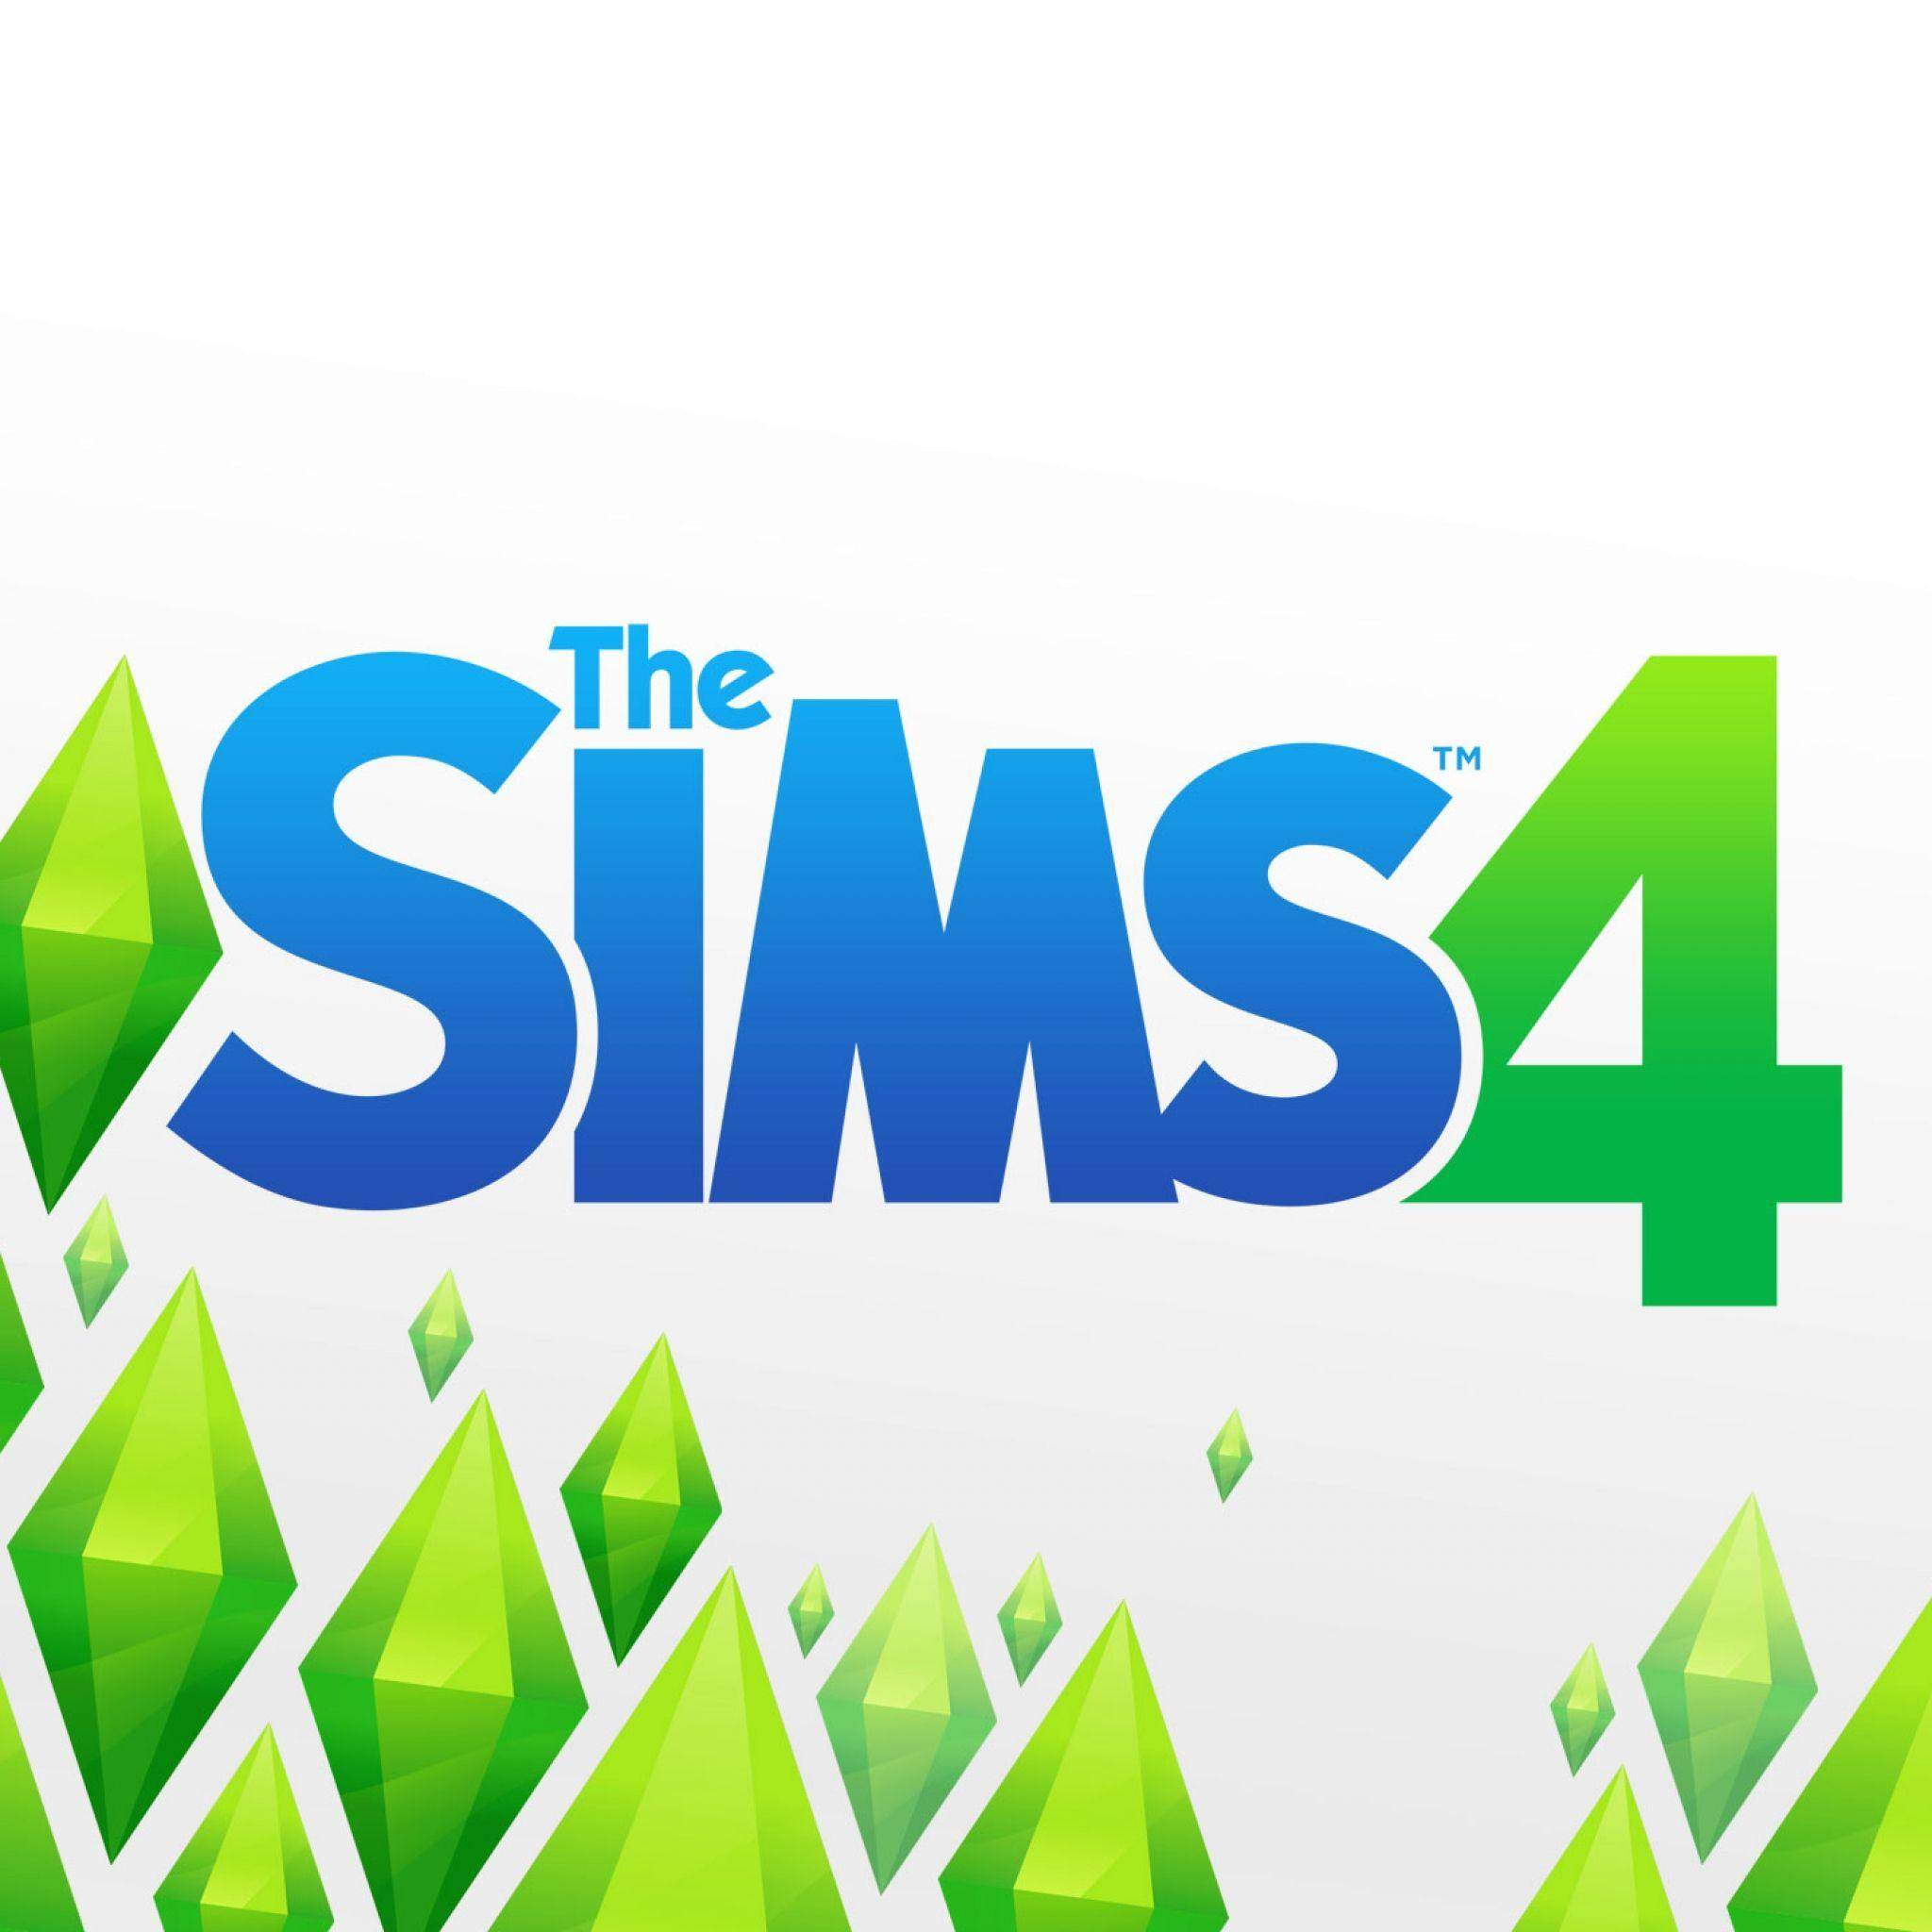 Download Wallpaper 2048x2048 The sims 4, Maxis software, 2014, Pc ...